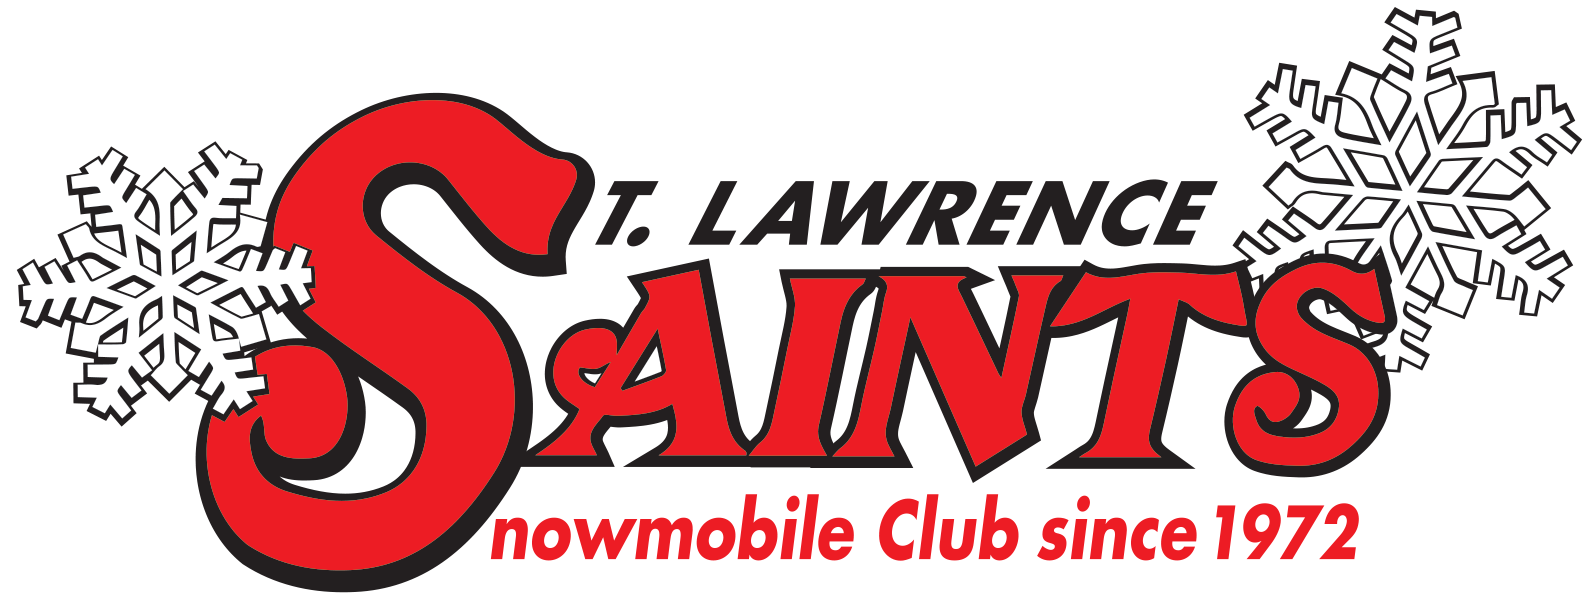 St Lawrence Saints Snowmobile Club